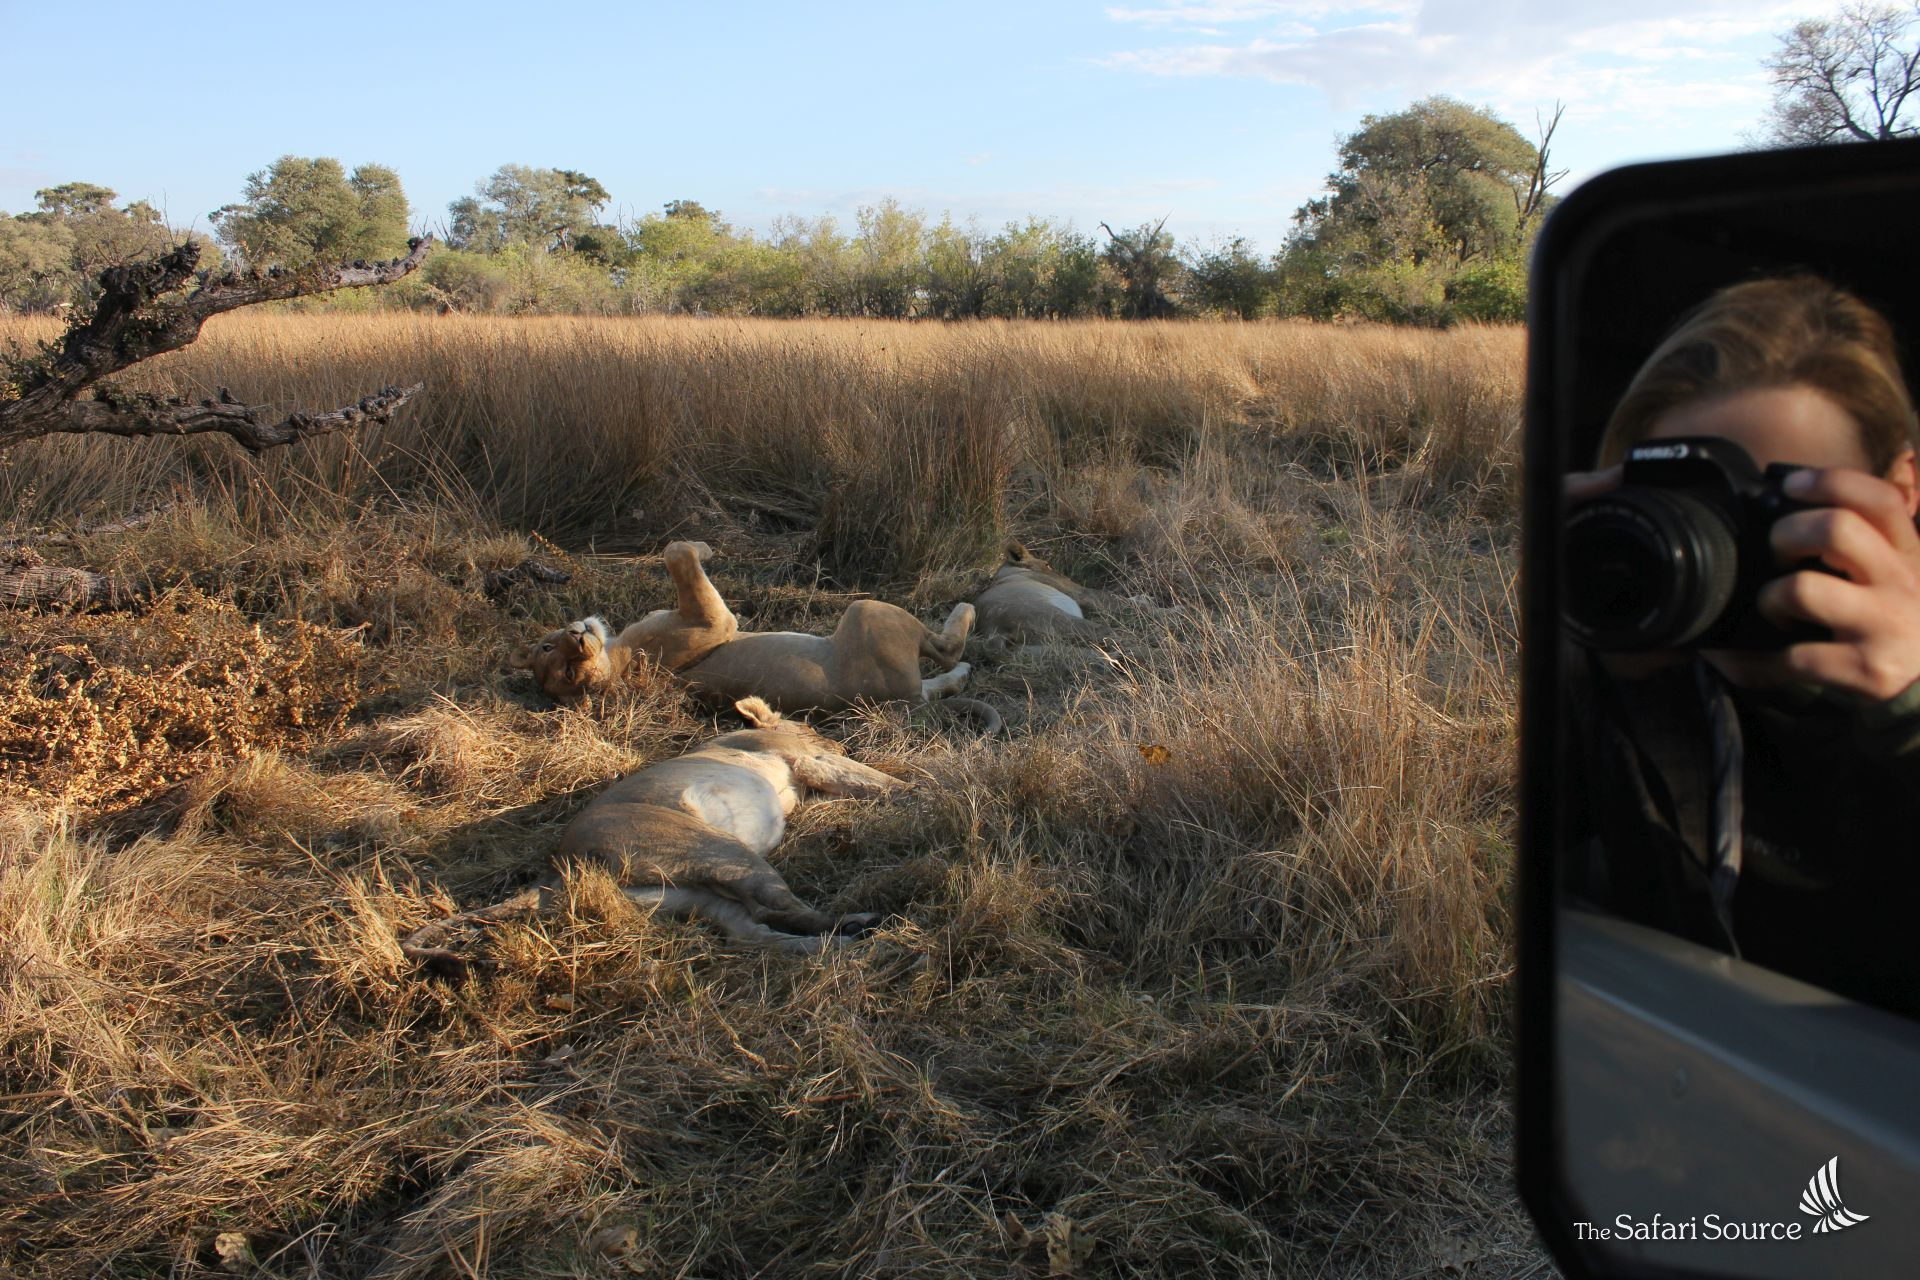 Lion sighting on Safari in the Moremi Game Reserve, Khwai, Botswana, Game Drive, Lioness Sleeping, Miriam Reiter Taking a picture, The Safari Source